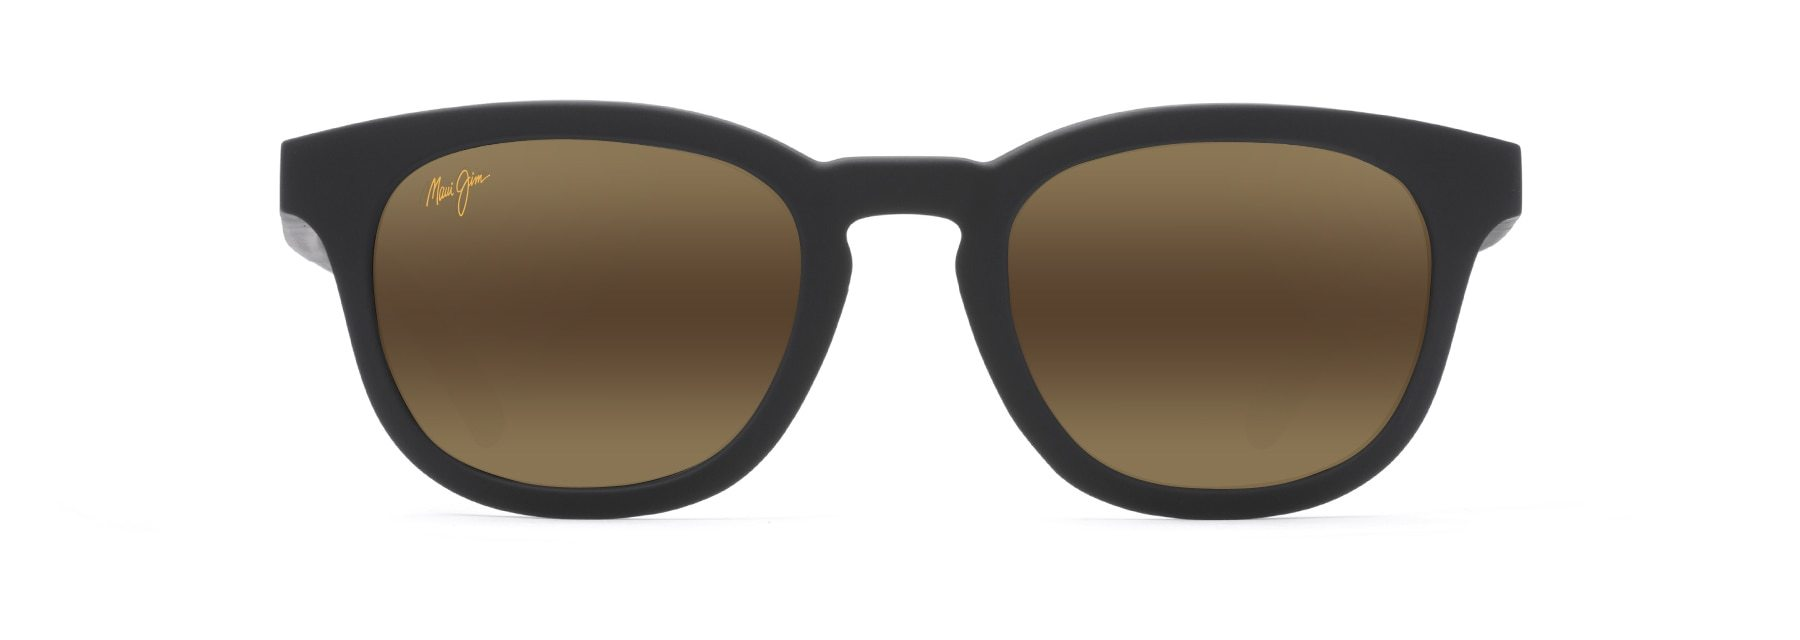 MyMaui Koko Head MM737-003 Sunglasses